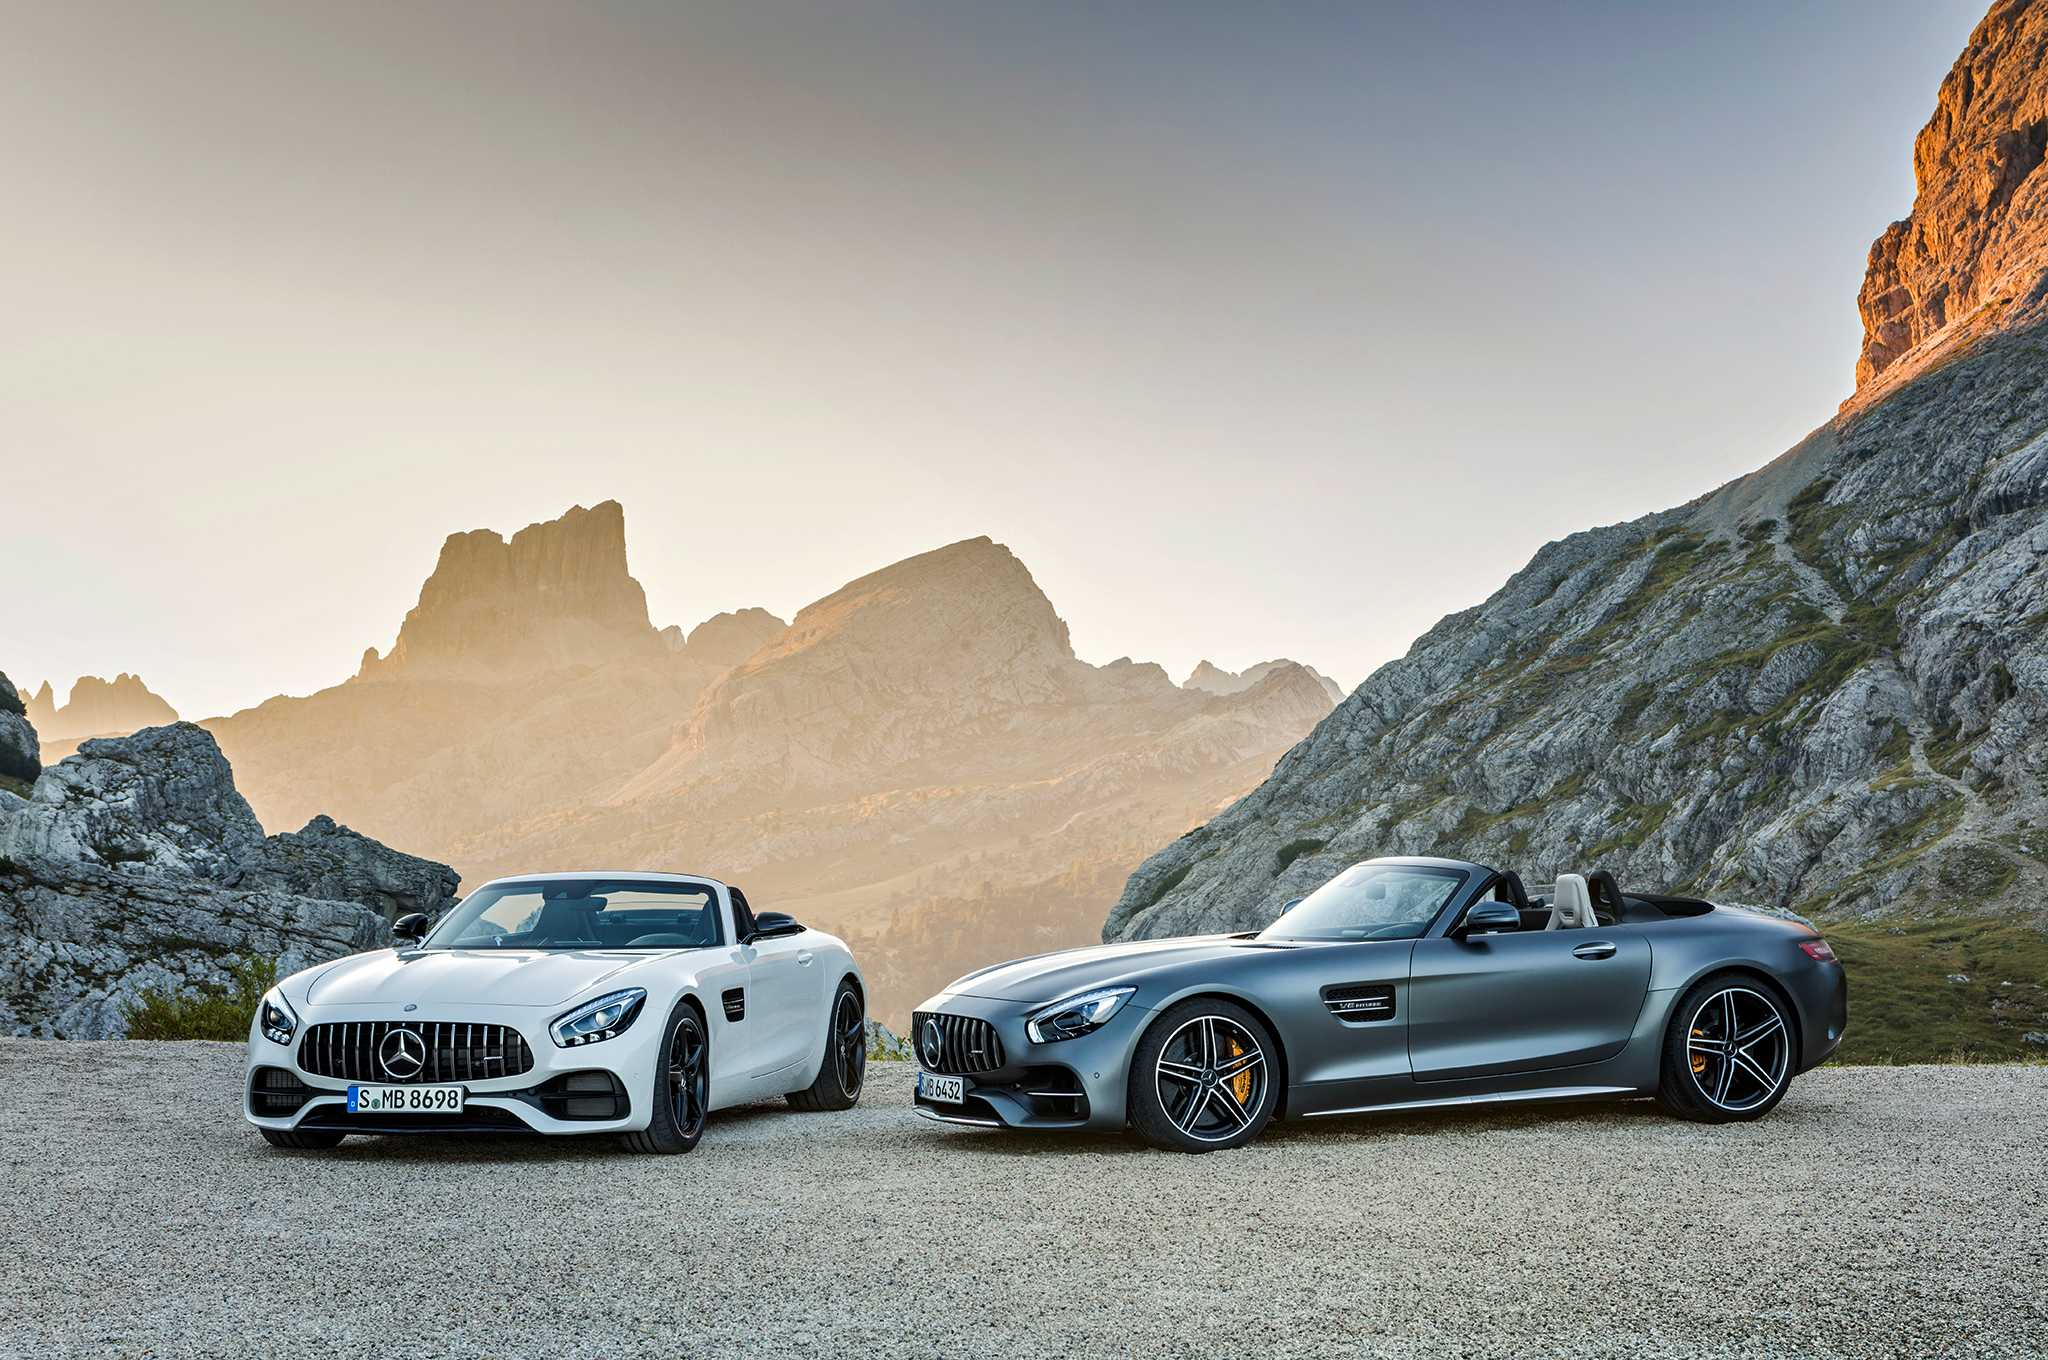 Mercedes AMG GT C, GT Roadster Photos, Specs Revealed Ahead of Paris Show